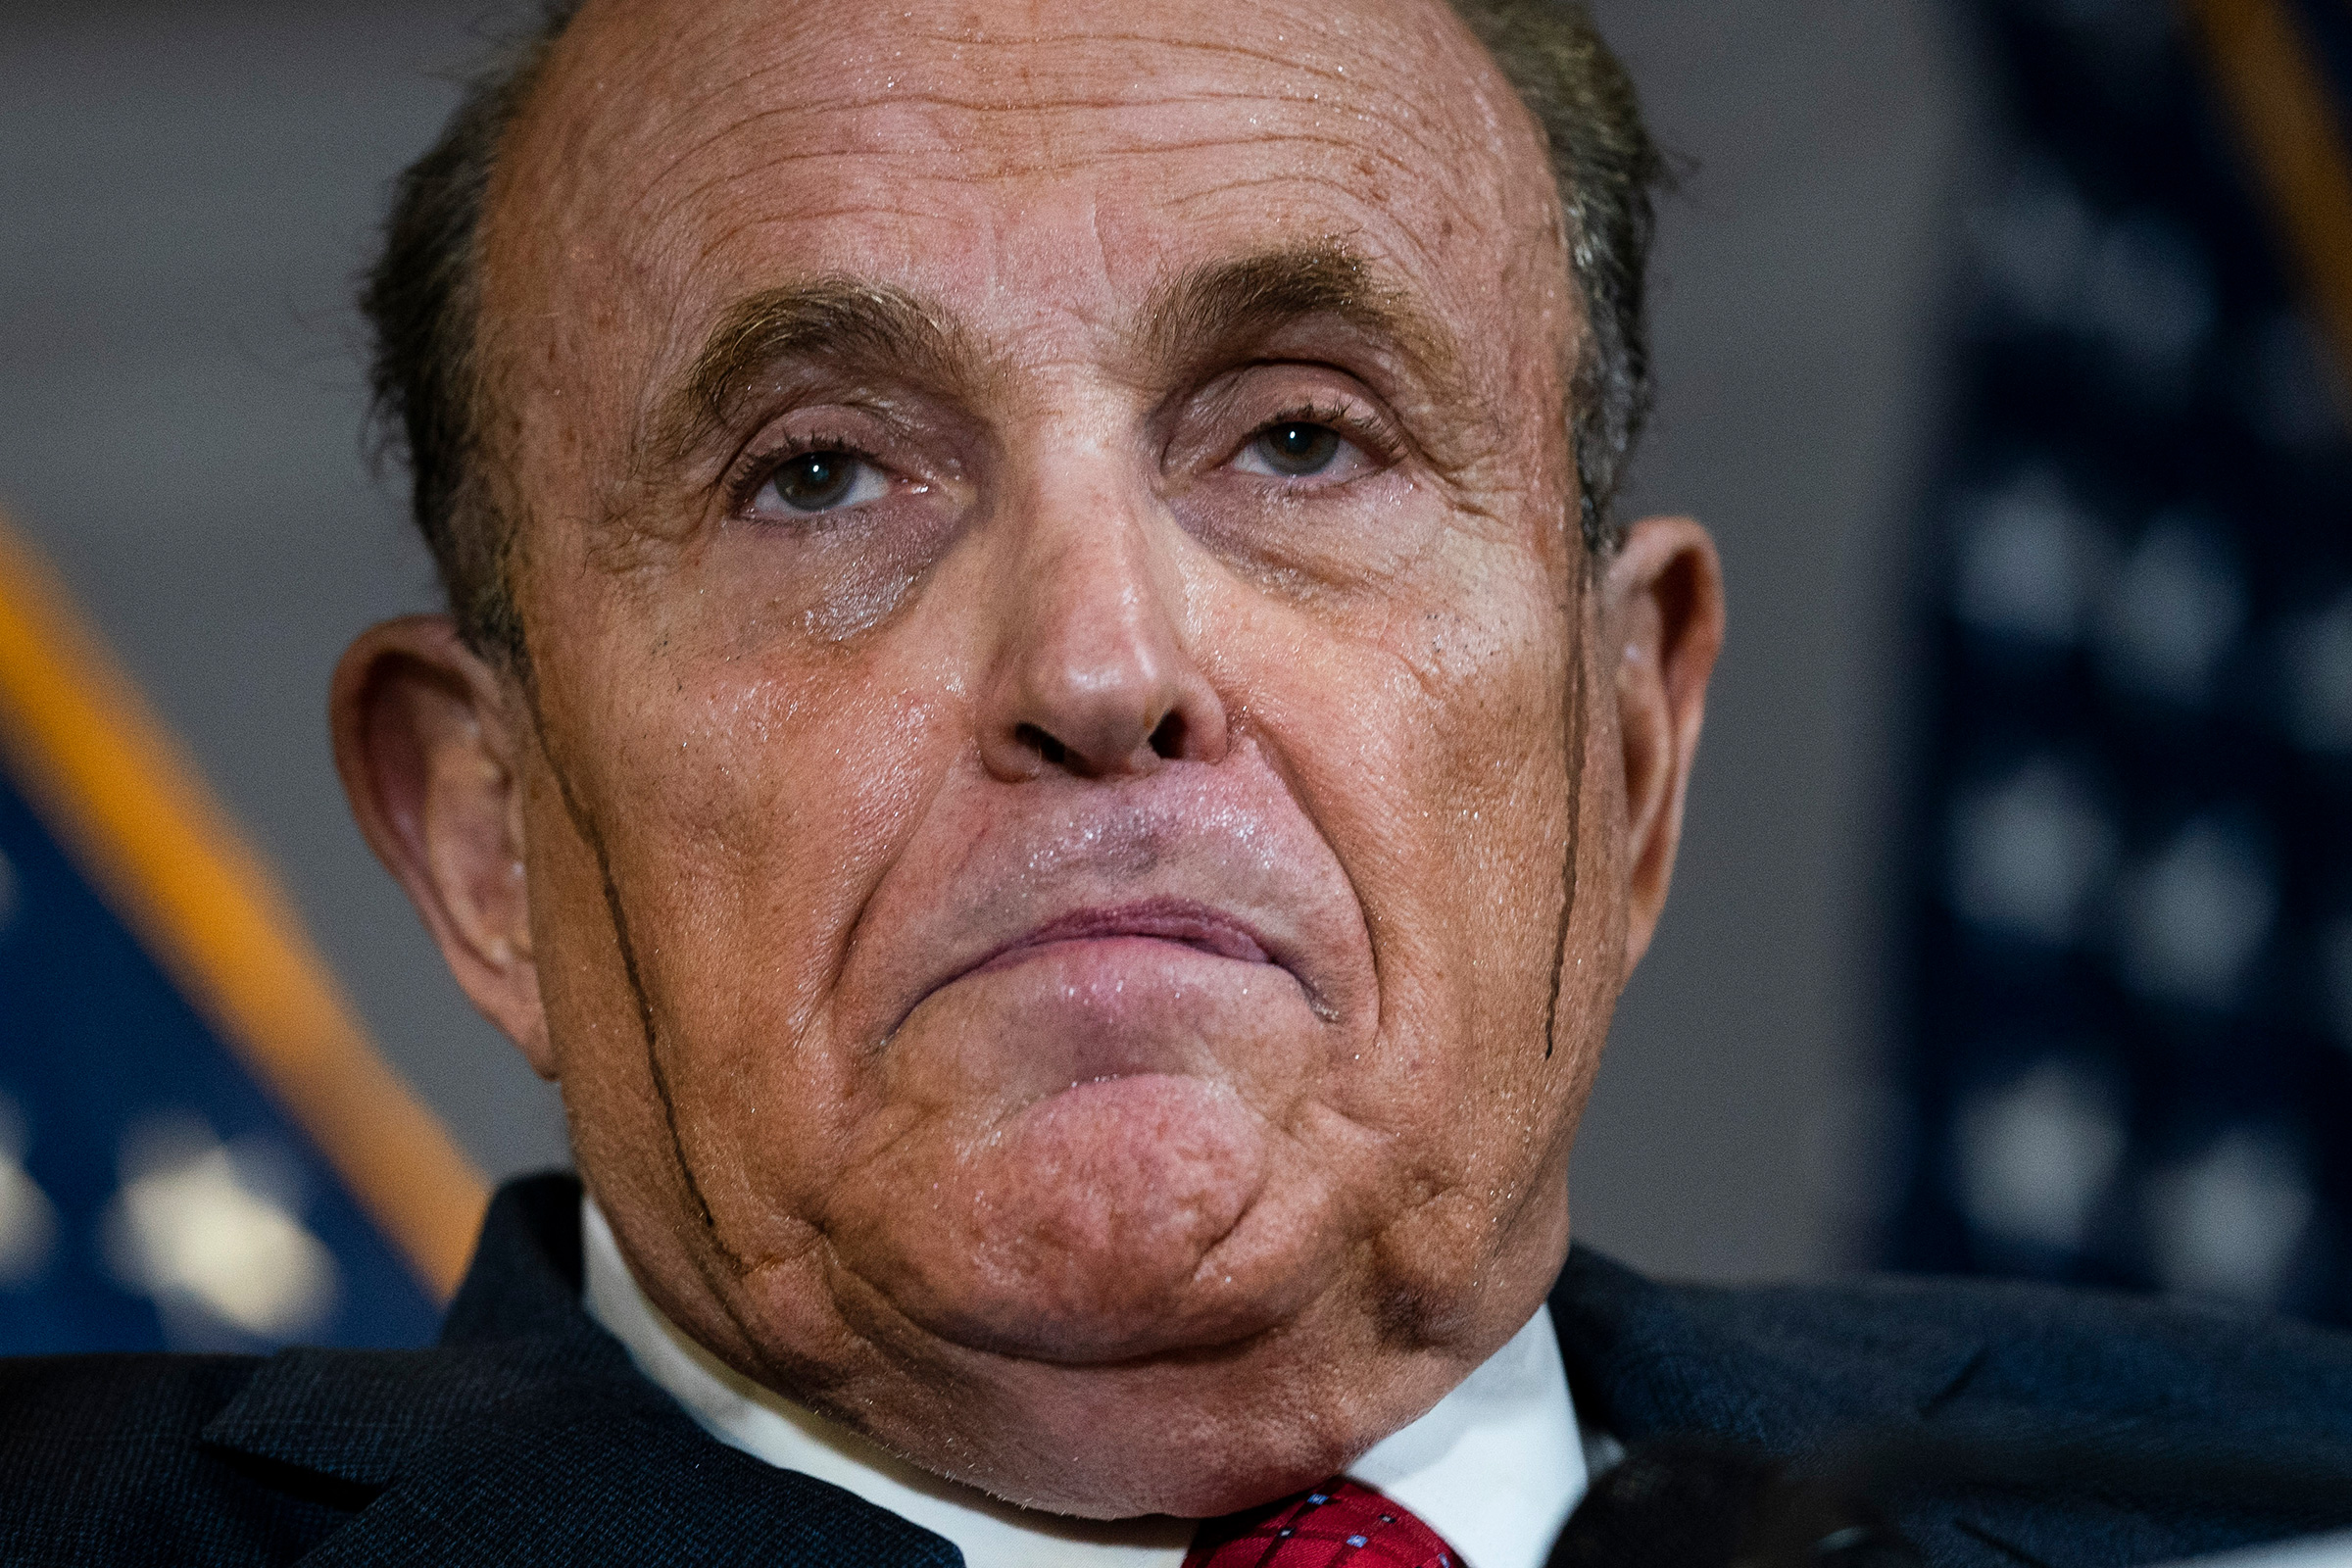 Rudy Giuliani speaks to the press about various lawsuits related to the 2020 election, inside the Republican National Committee headquarters in Washington, D.C., on Nov. 19, 2020.